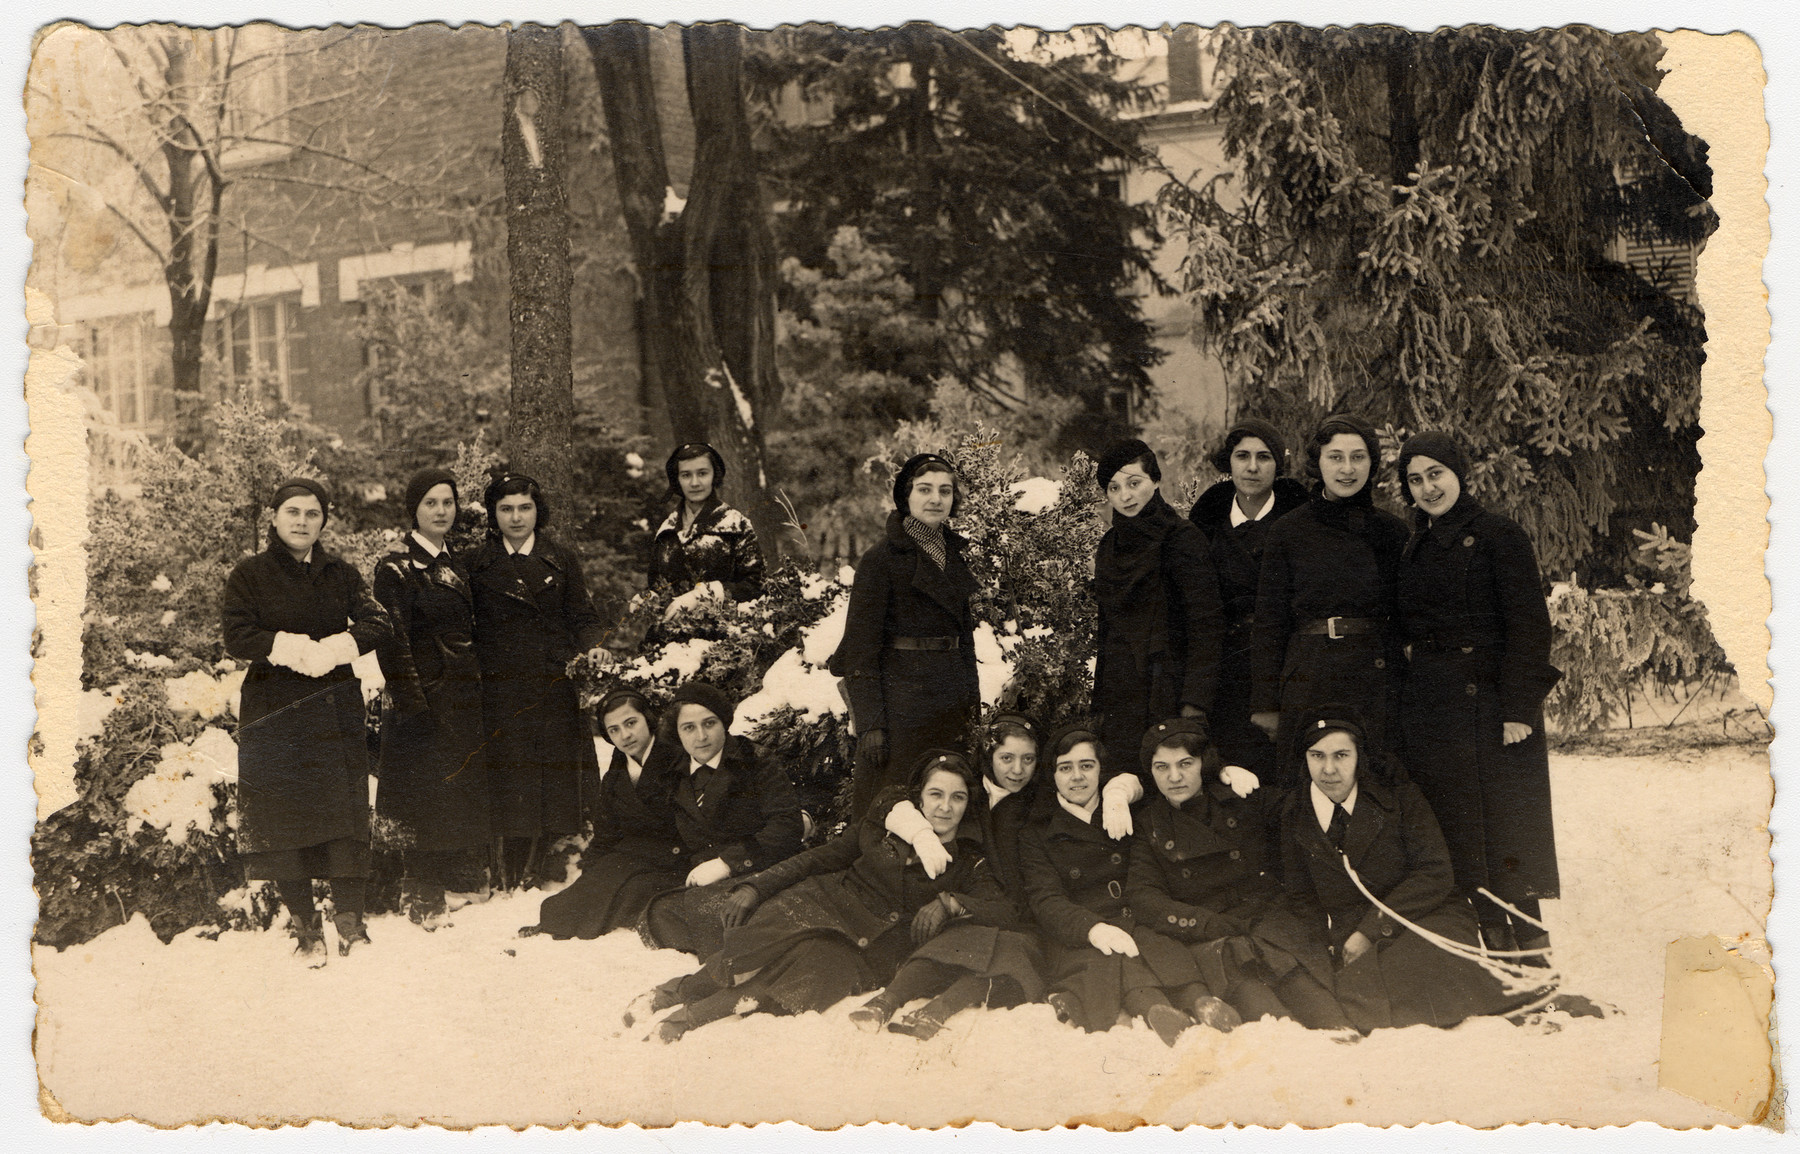 High school girls in Ruschuk Blugaria pose together in the snow.  Victoria Ashkenazi is seated in the first row, third from the right.